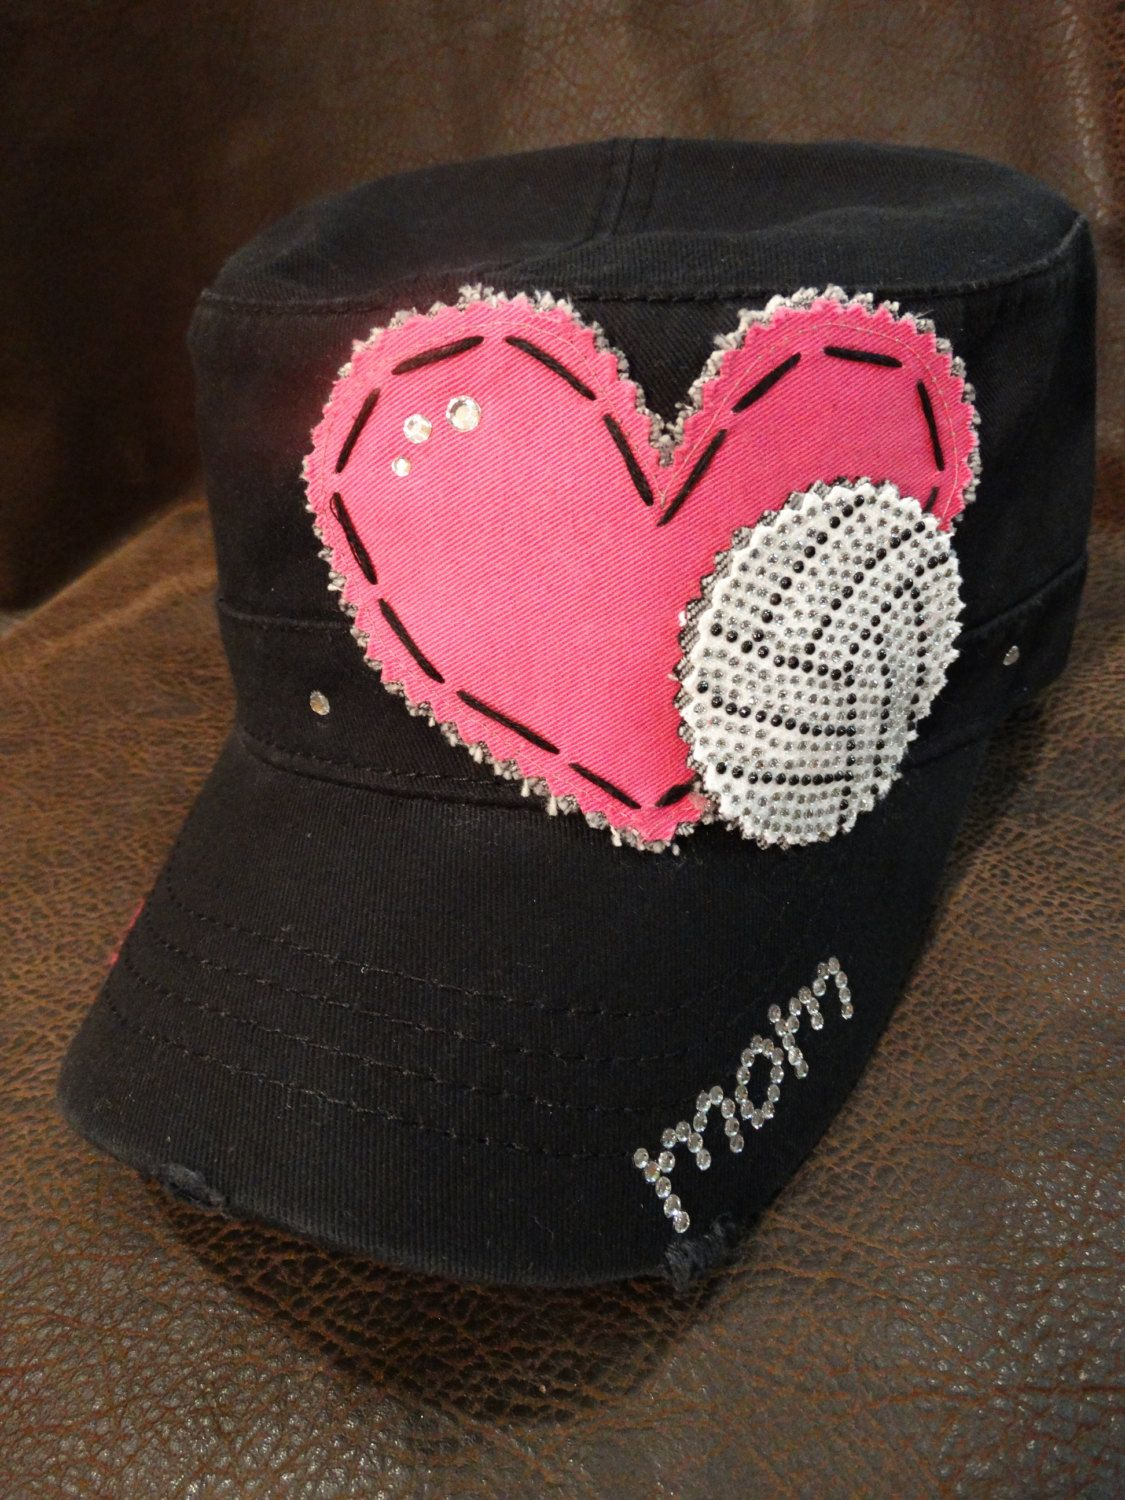 Change To Coach Not Mom Volleyball Mom Love Bling Distressed Cadet Cap By Blingirlspirit 29 95 Volleyball Mom Mom Bling Volleyball Mom Shirts